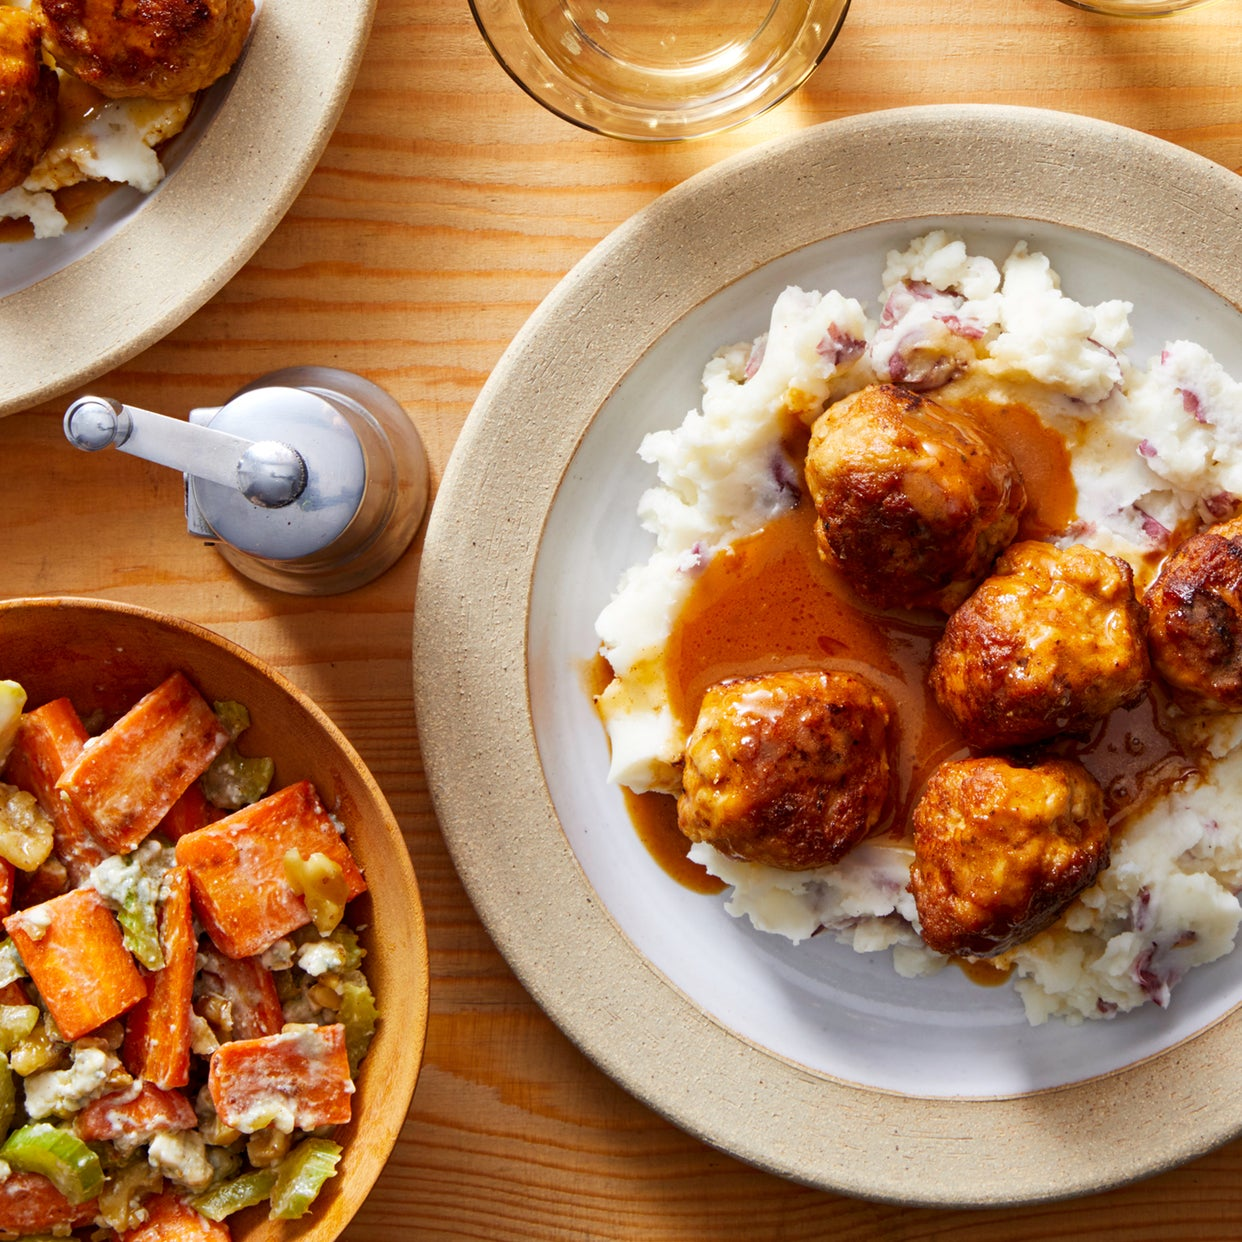 Buffalo Chicken Meatballs with Creamy Mashed Potatoes & Carrot-Celery Salad